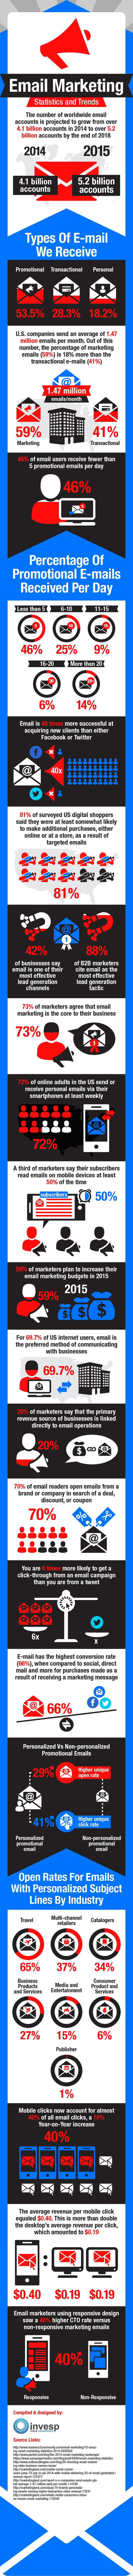 Email Marketing Statistics Trends Small Business